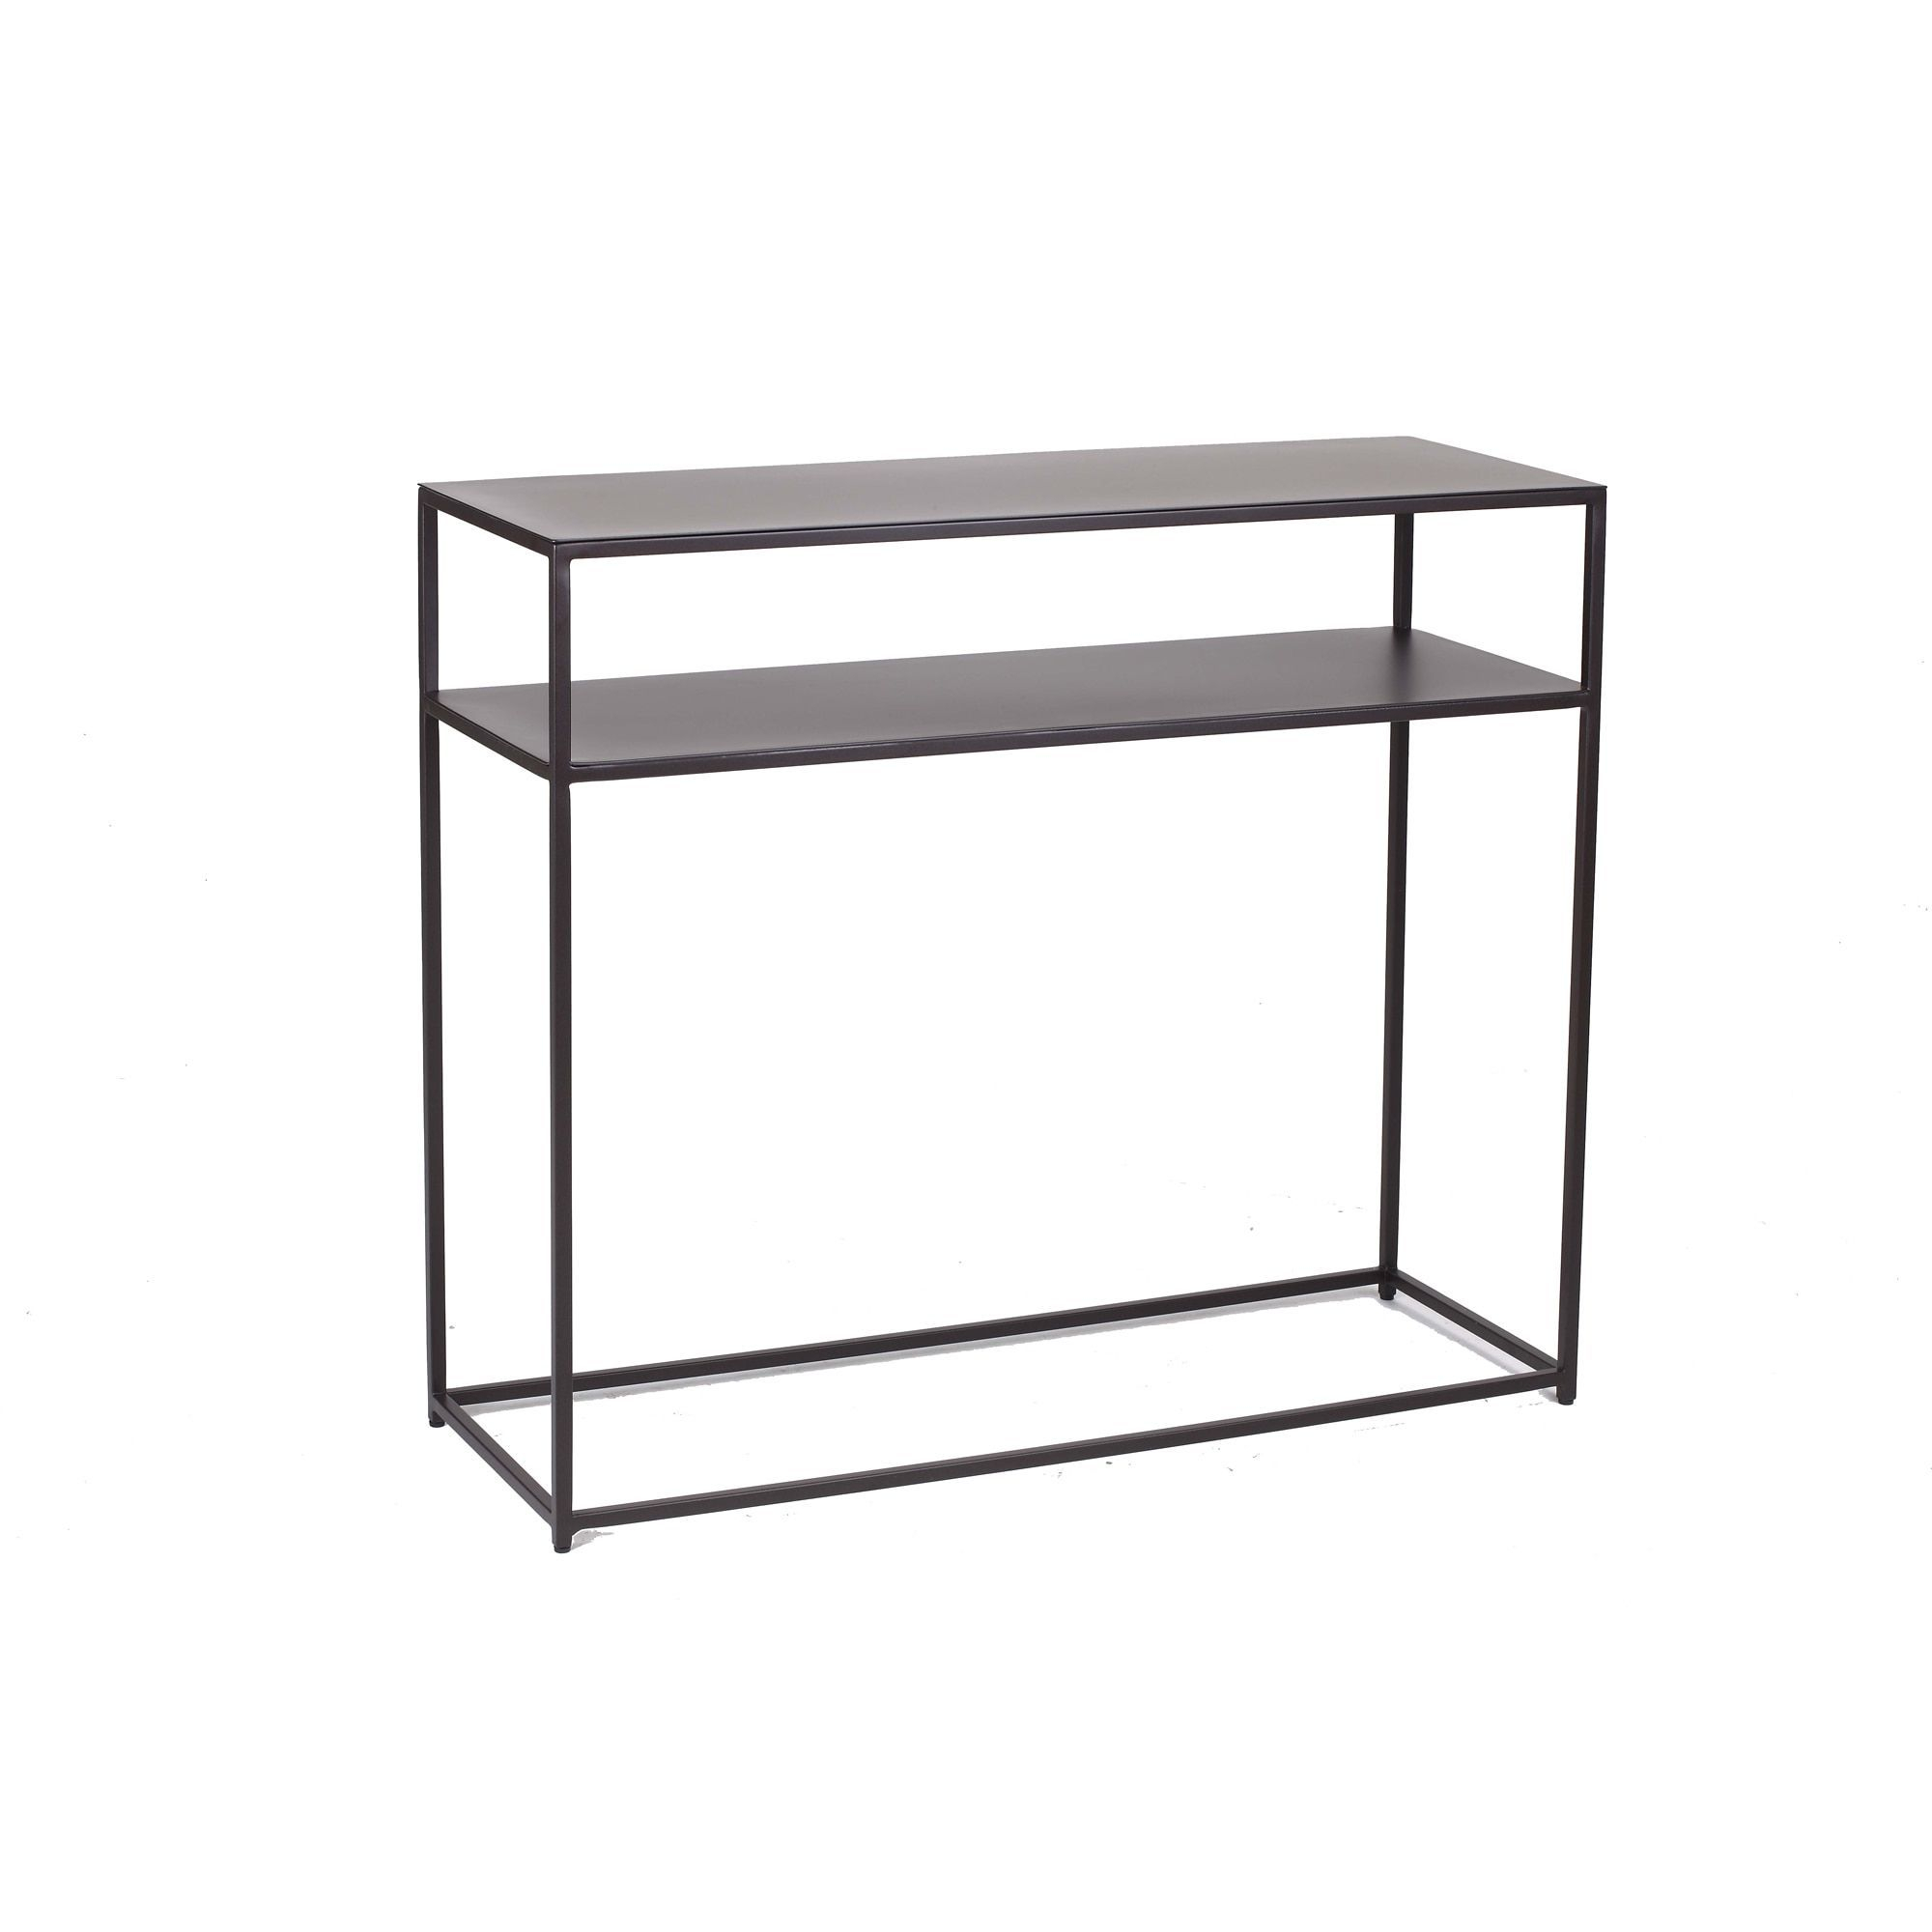 Tag Coco Console Table Urban Ii, Brown   Console Tables, Outlet Regarding Echelon Console Tables (View 7 of 30)